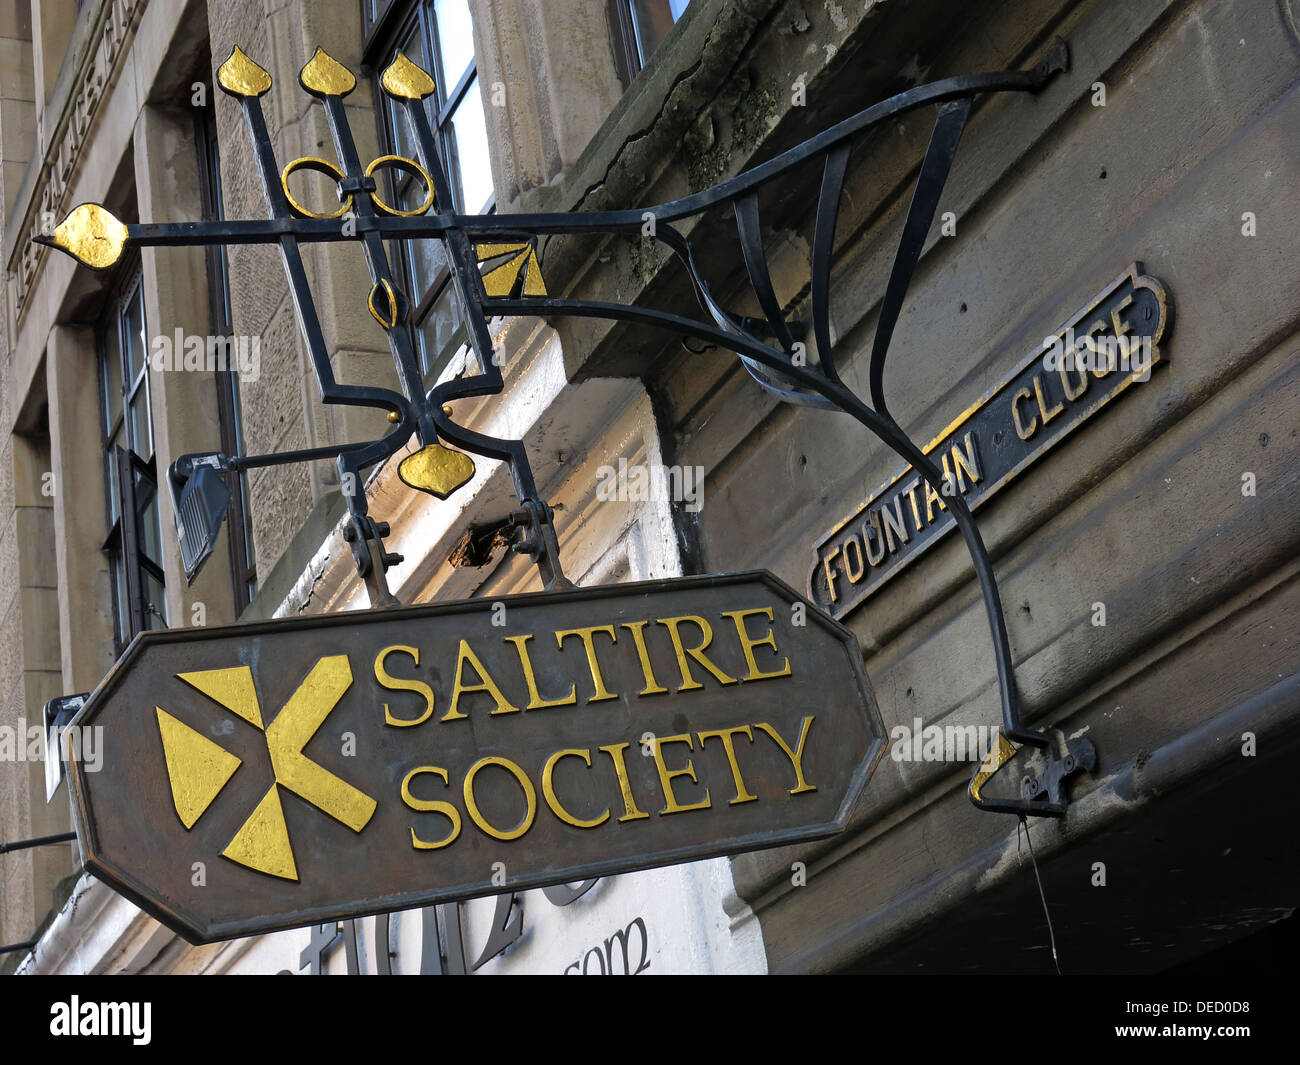 offices,street,st,Royal,Mile,Edinburgh,city,Scotland,Uk,old,fashioned,restore,the,country,to,its,proper,place,as,a,creative,force,in,European,civilisation,culture,cultural,heritage,natural,flag,of,nation,gotonysmith,oldtown,Buy Pictures of,Buy Images Of